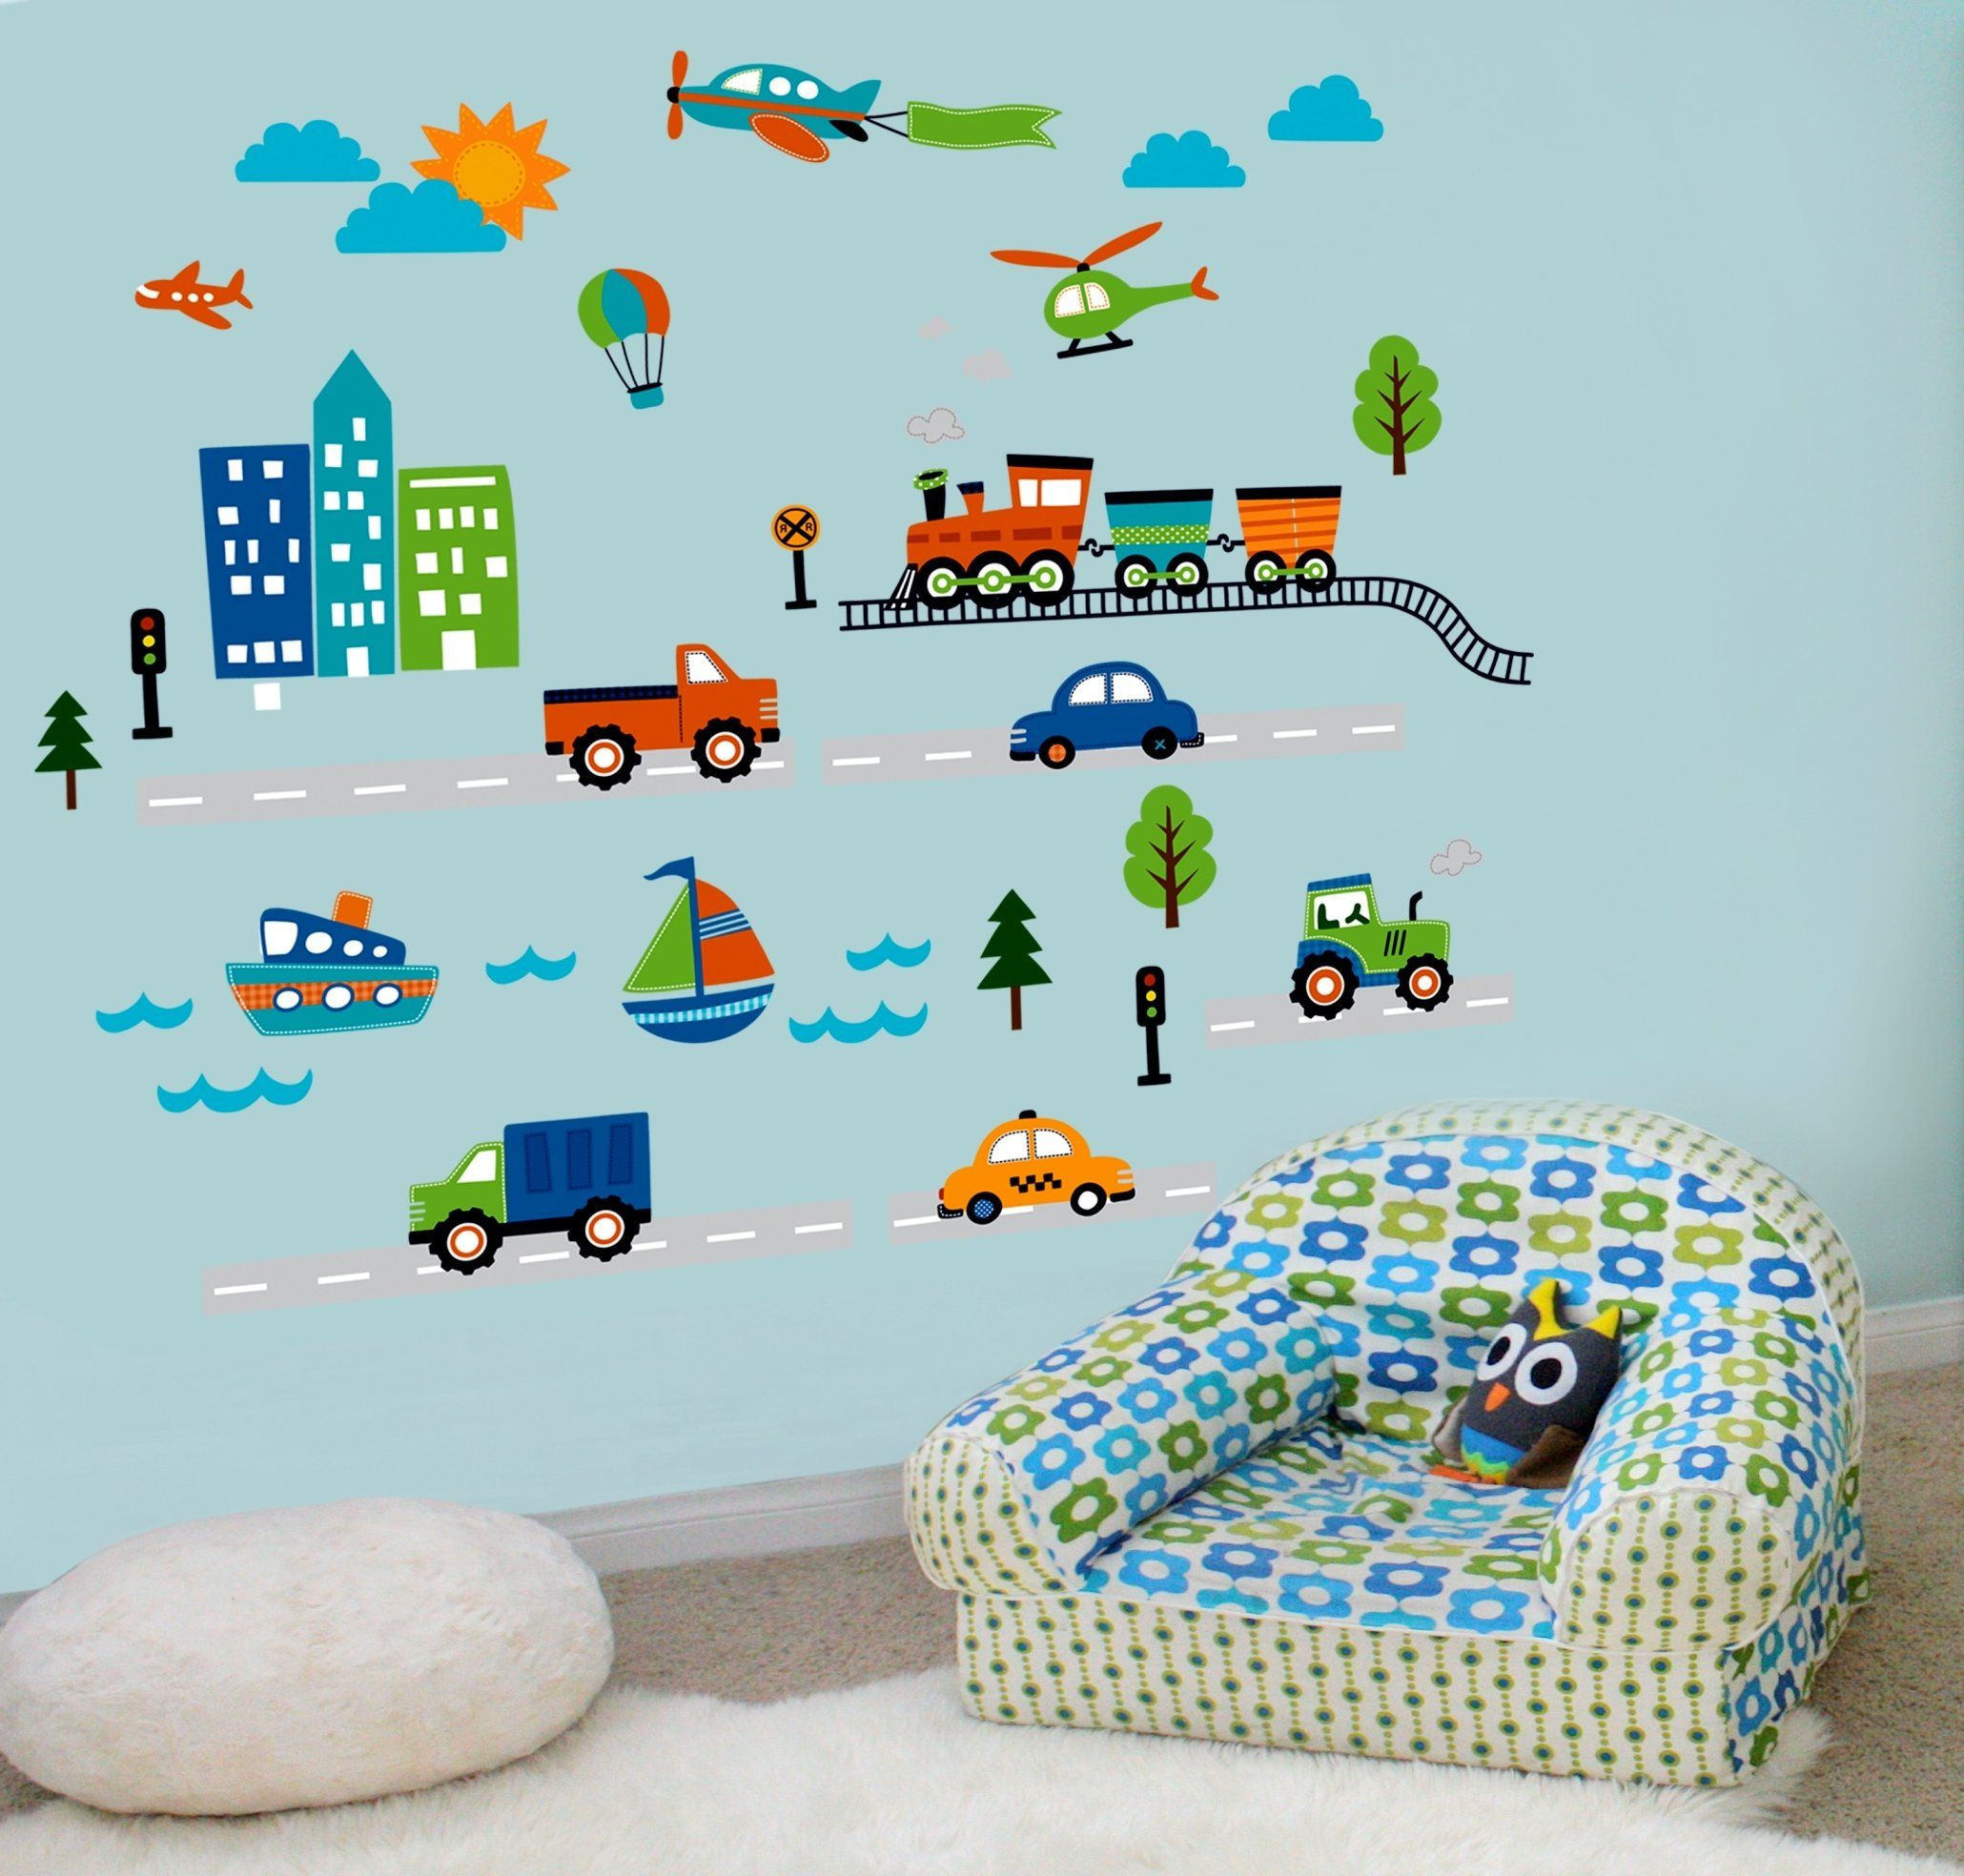 Amazon.com: CherryCreek Decals Transportation and City Scene Kids ...